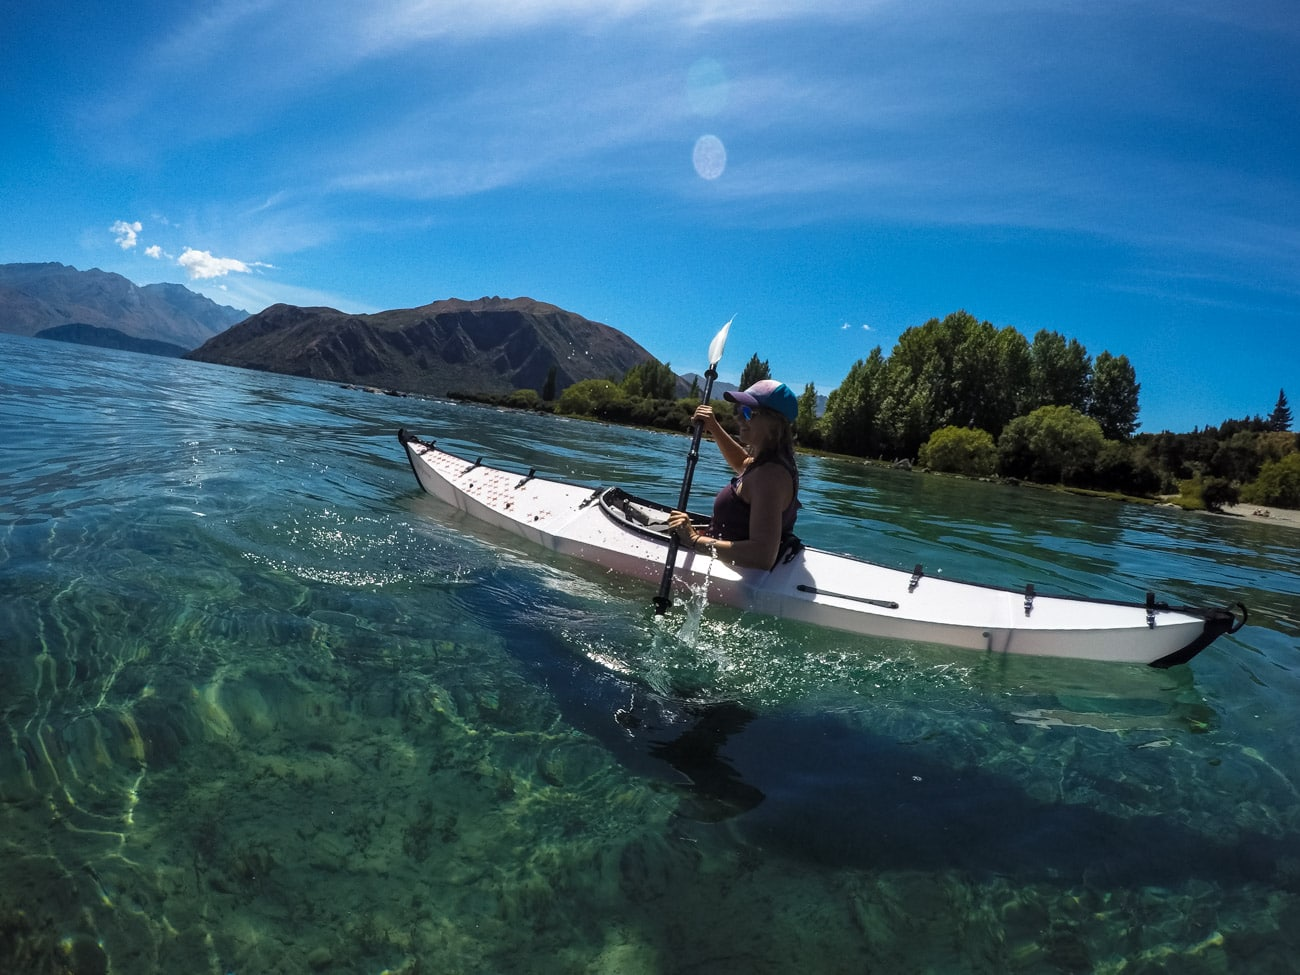 Paddling a portable Oru Kayak on Lake Wanaka in New Zealand